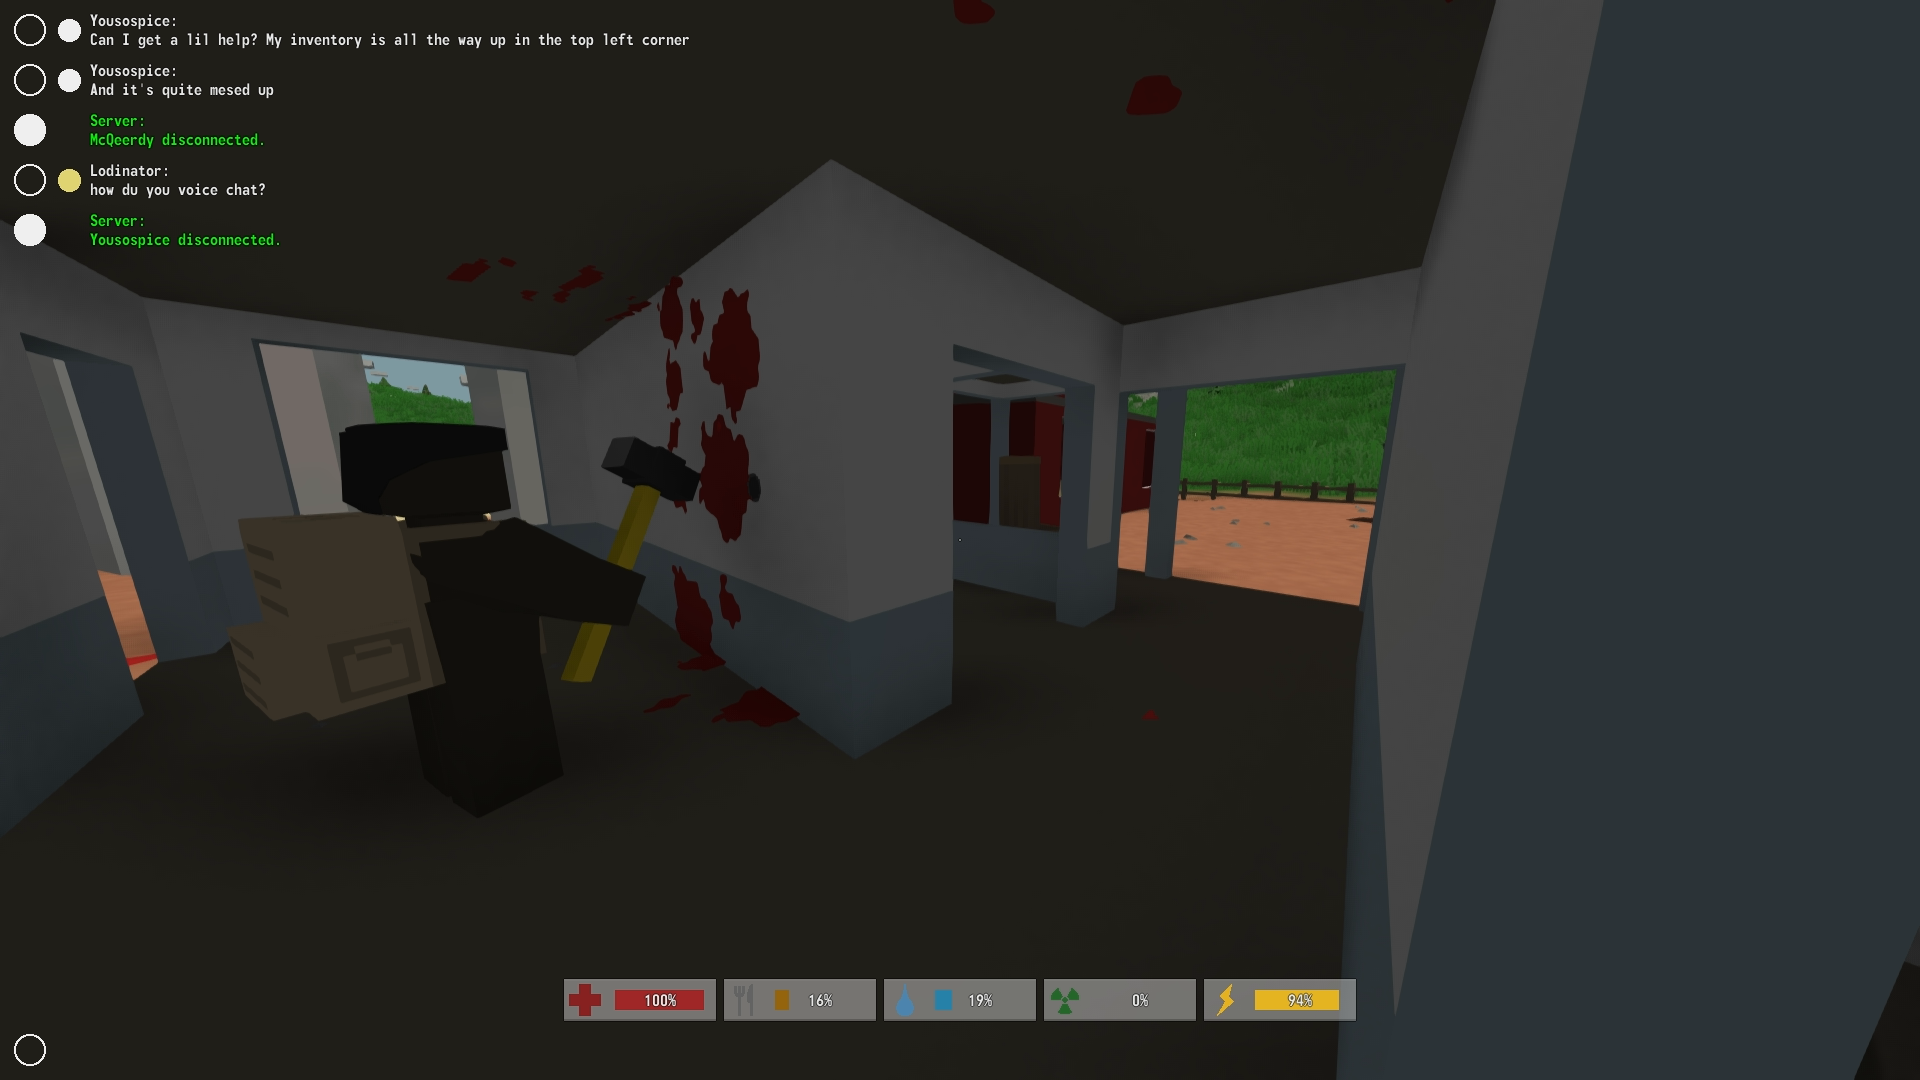 Sledge hammer maniac in the new unturned zombie survival game thats sledge hammer maniac in the new unturned zombie survival game thats free to play on steam gumiabroncs Image collections